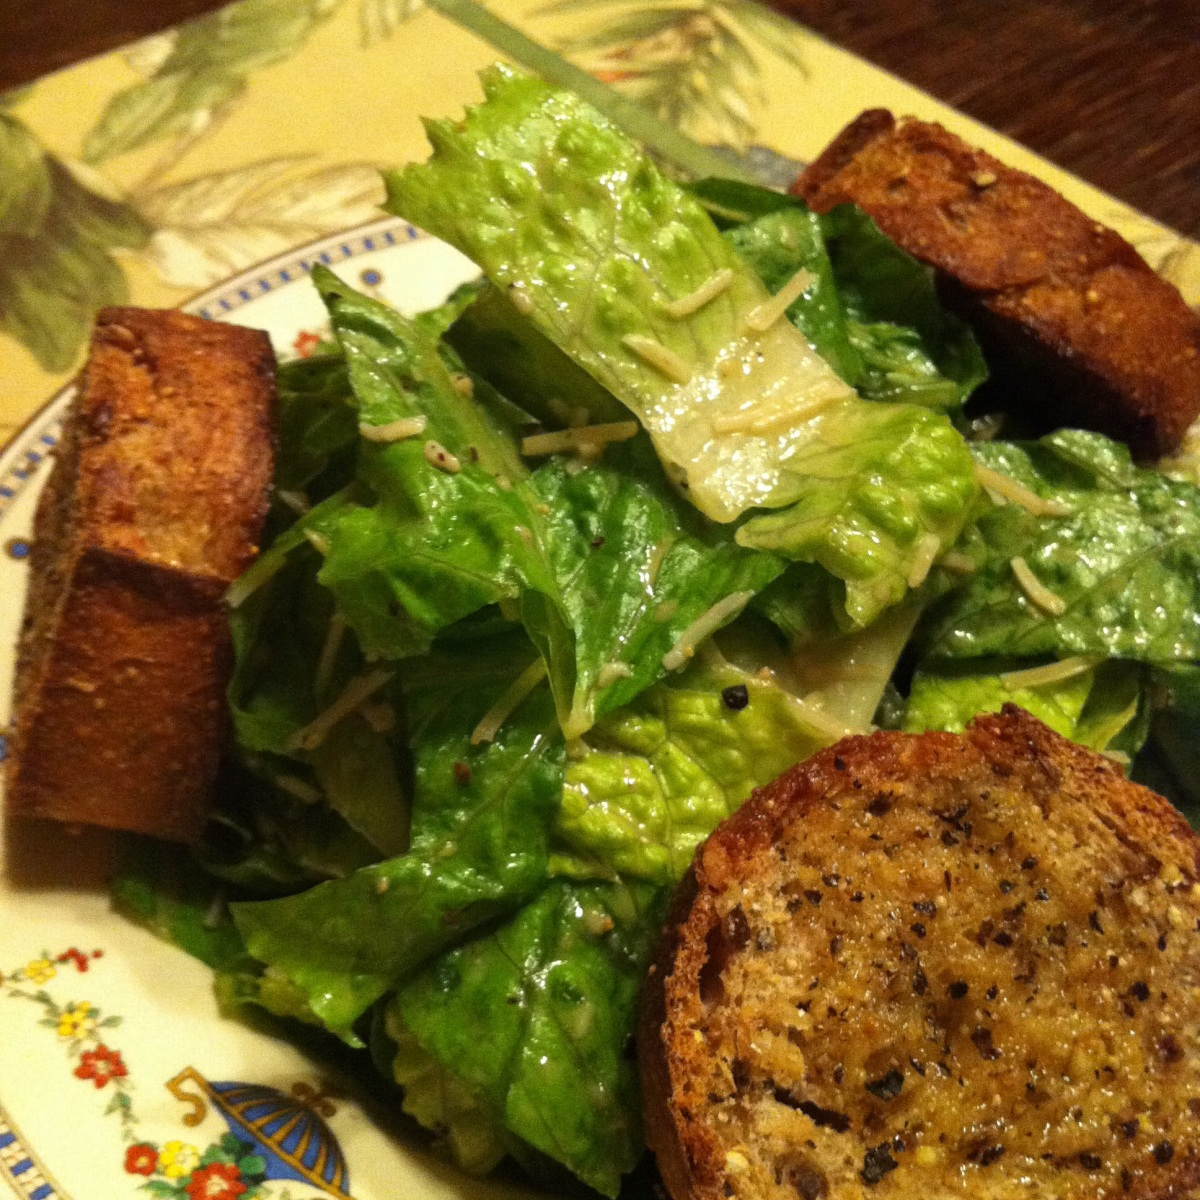 Caesar Salad with Garlic Crostini